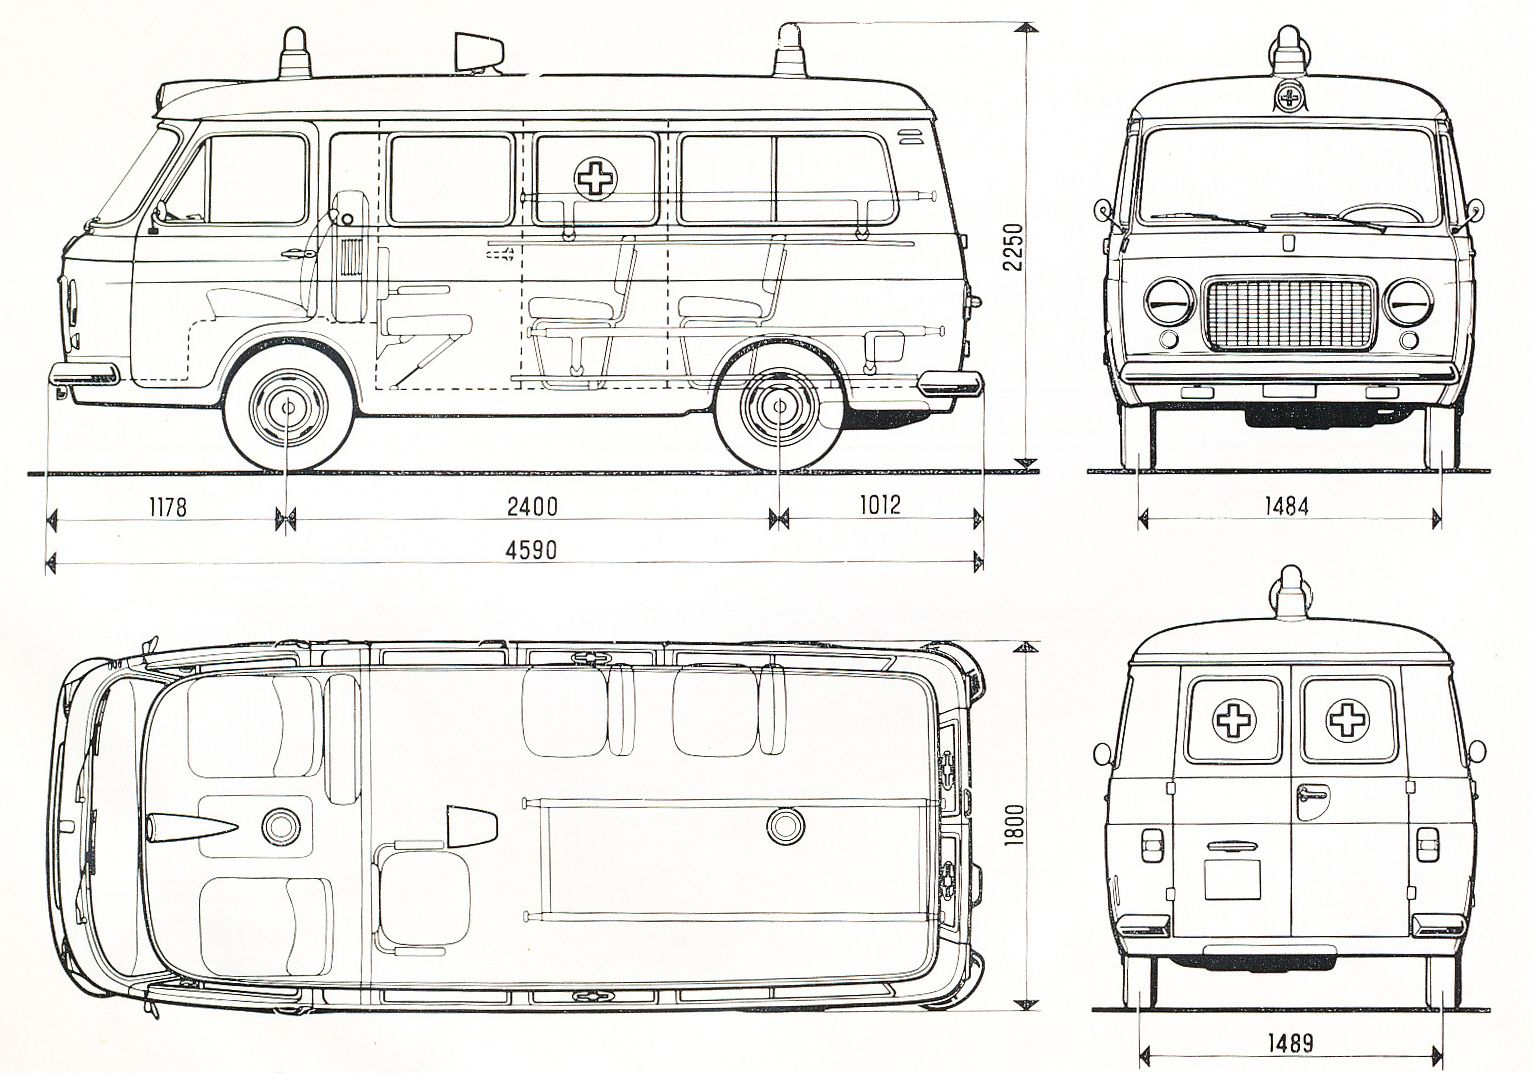 Fiat 238 blueprint | Blueprints | Pinterest | Fiat and Vehicle